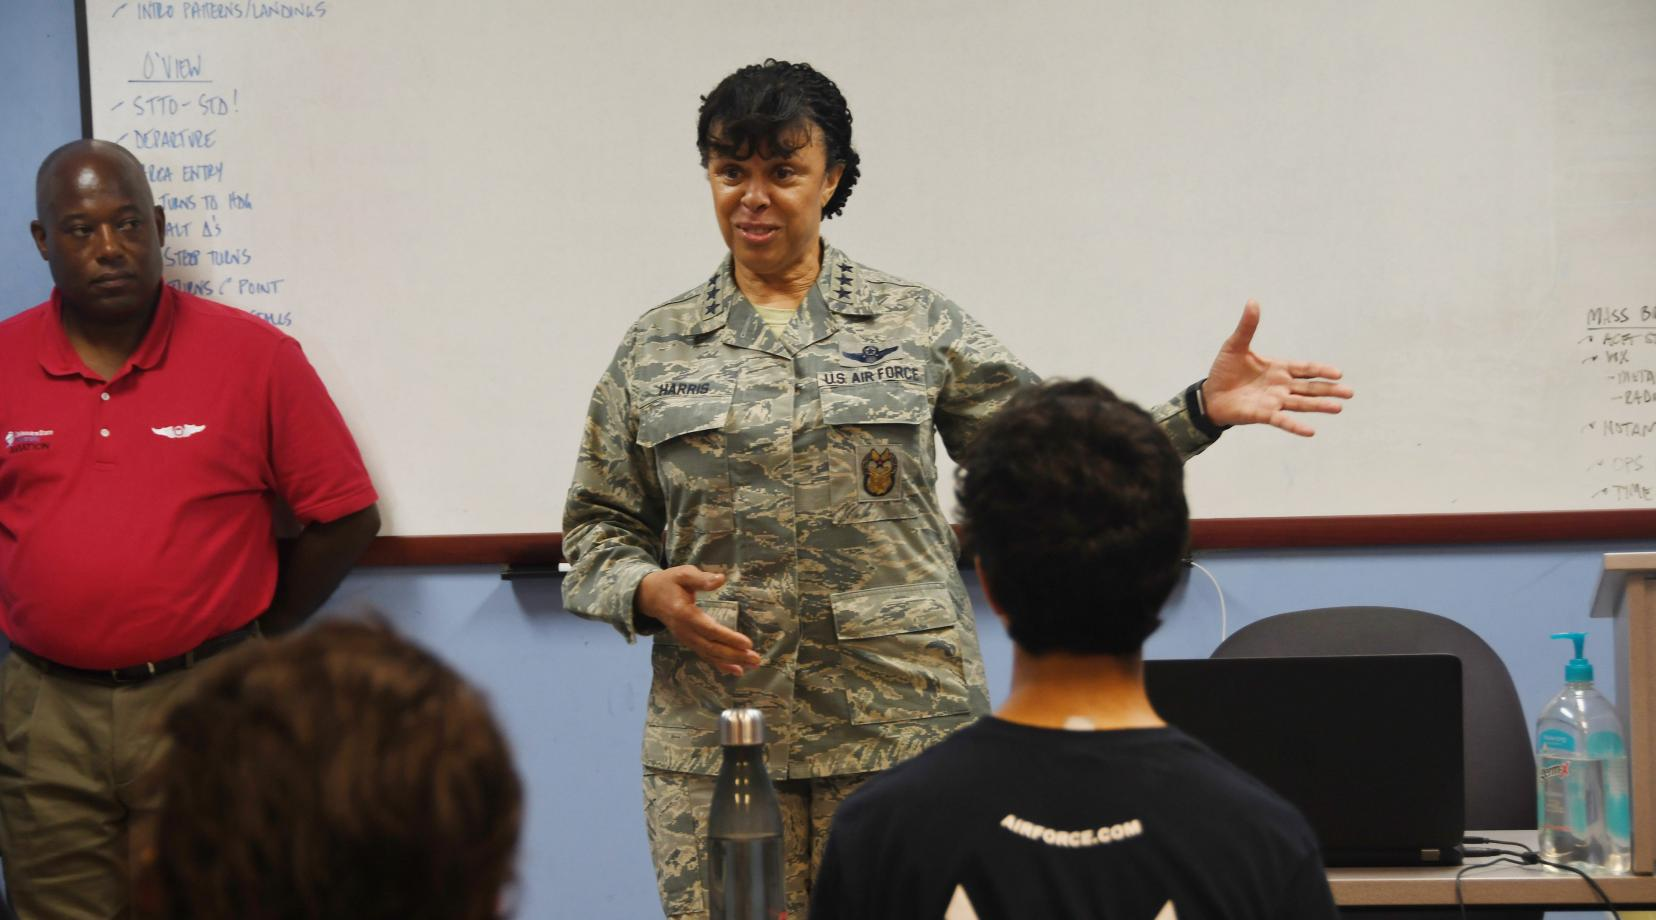 Lt. Gen. Stayce Harris, the highest ranking African-American femaie pilot in the U.S. Air Force, speaks to a group of ACE Program trainees at the Delaware Airpark, site of the DSU Aviation Program.